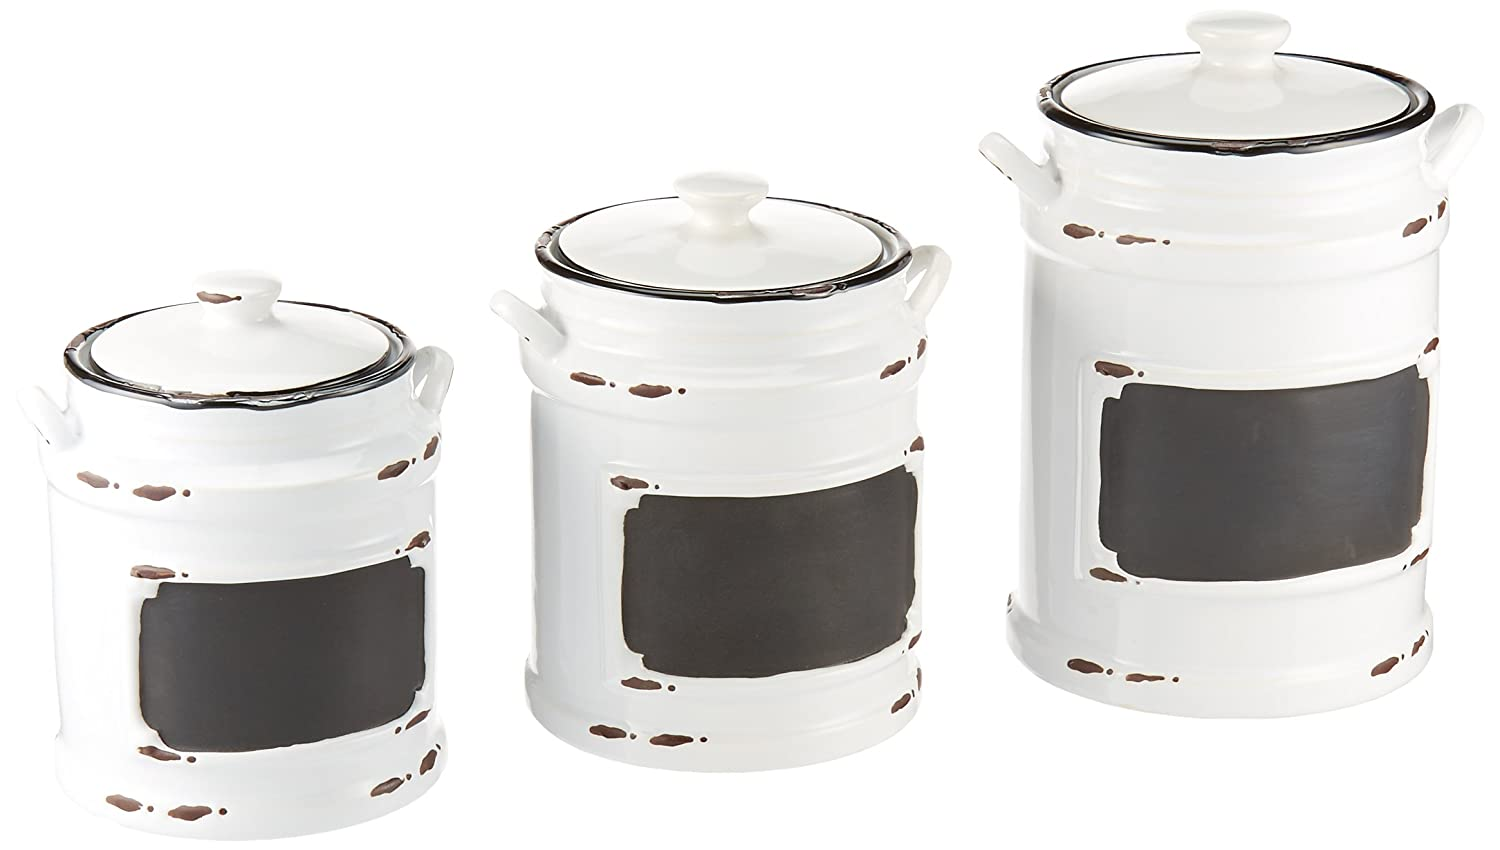 American Atelier 3 Piece Vintage Canister Set, Black 1562159-RB